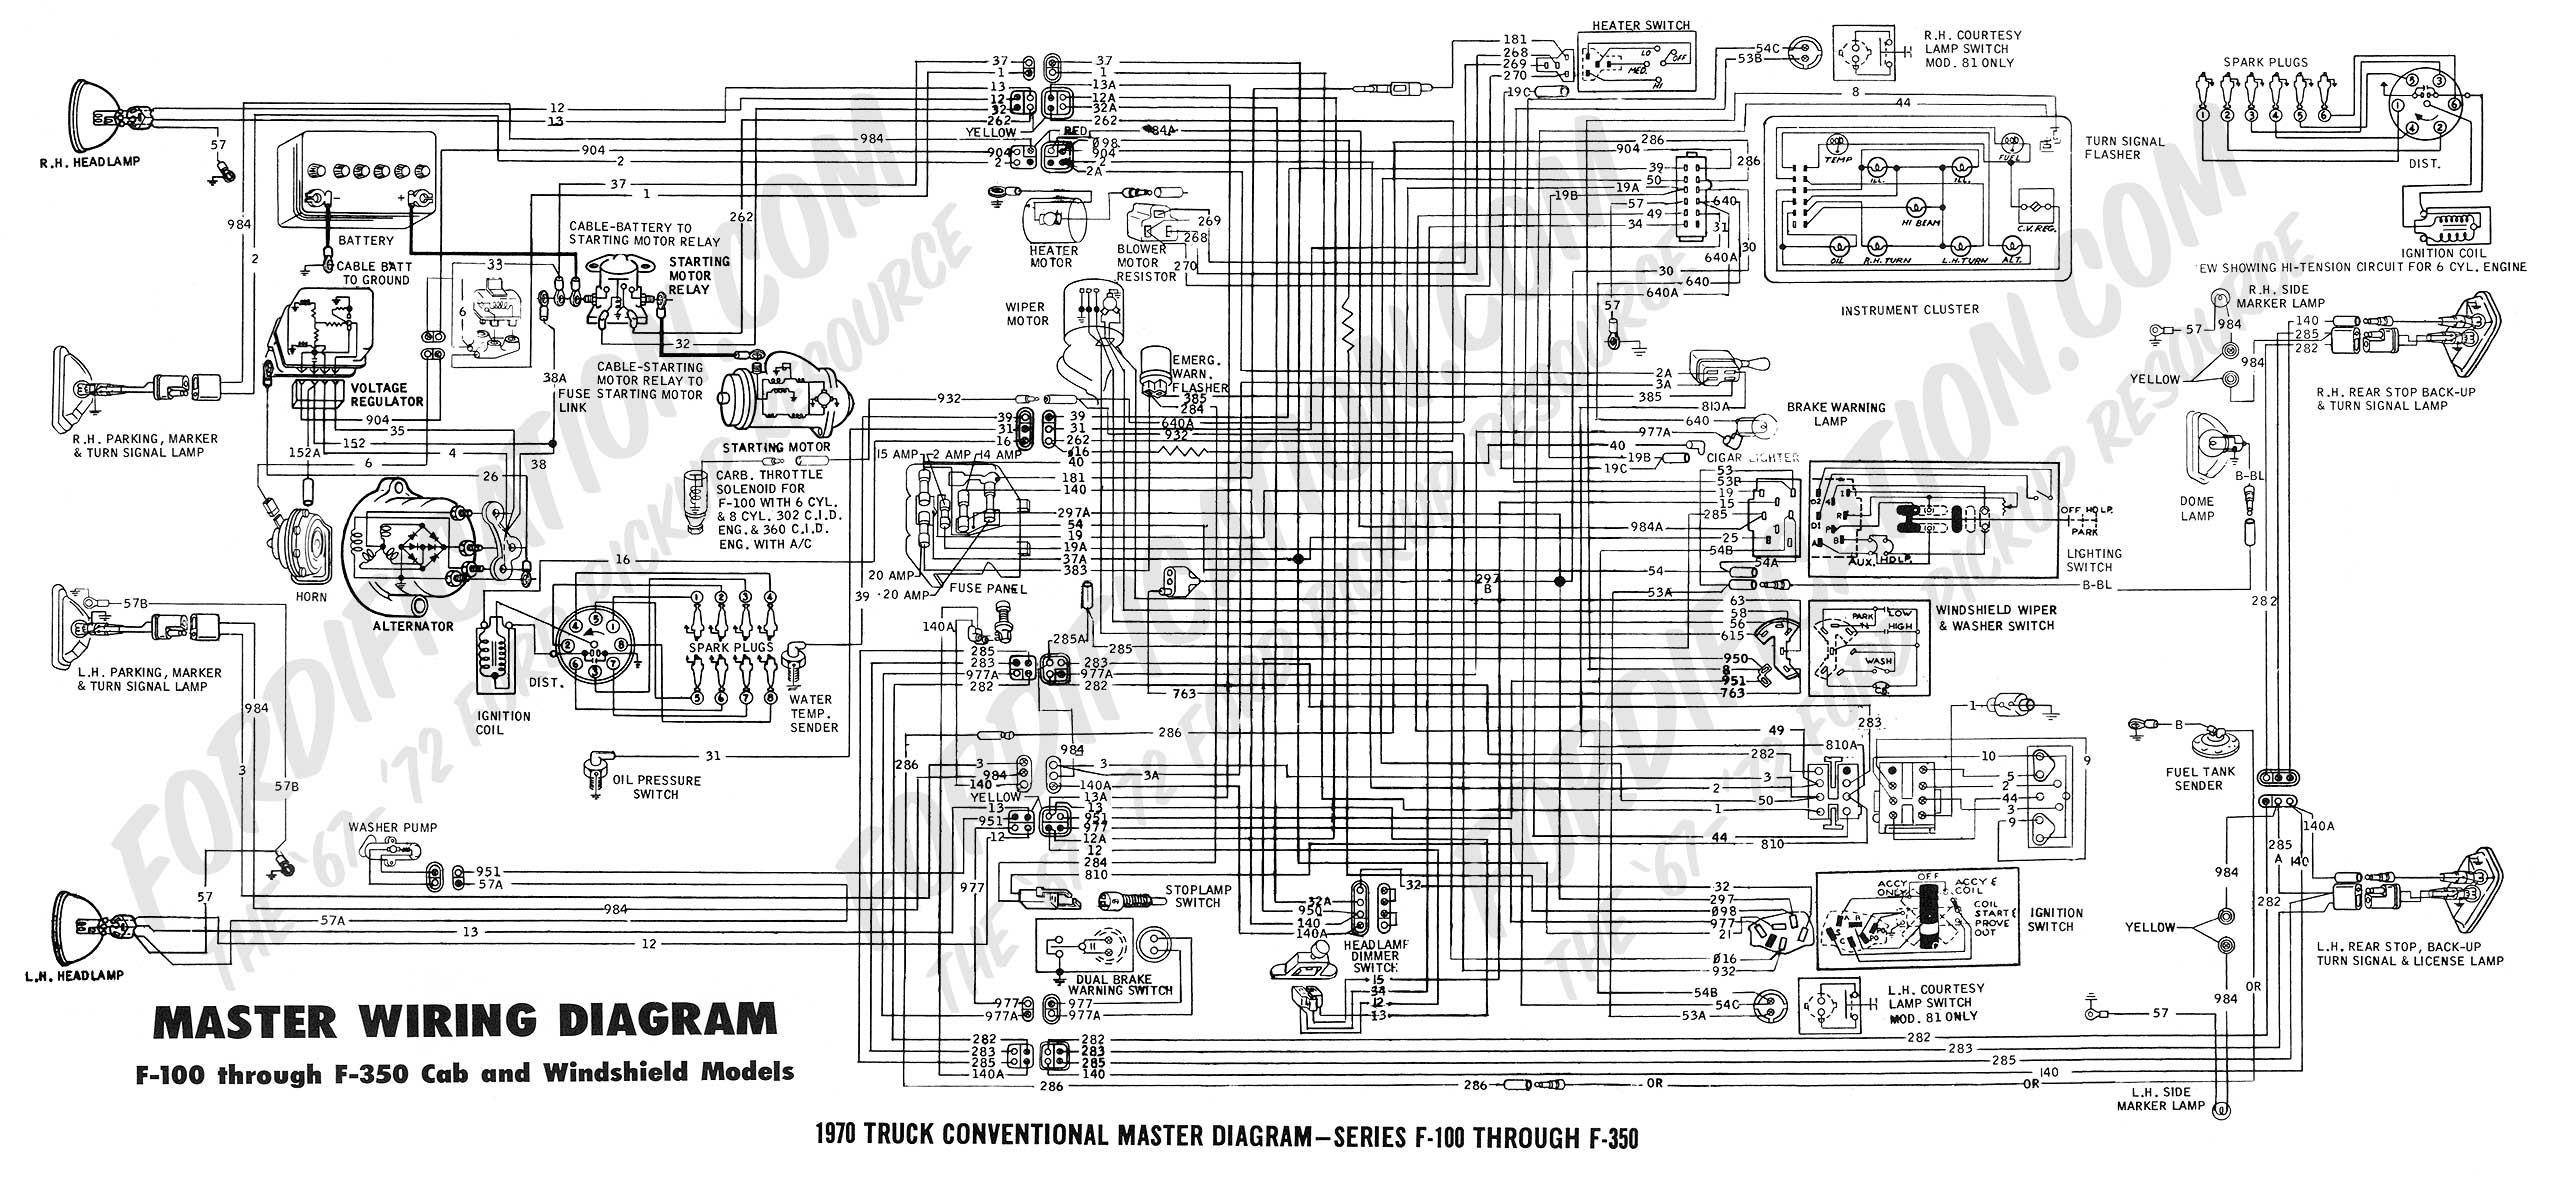 wiring diagram 70_master 1986 ford f150 wiring diagram 1986 ford bronco ii wiring diagram 351w wiring harness at soozxer.org